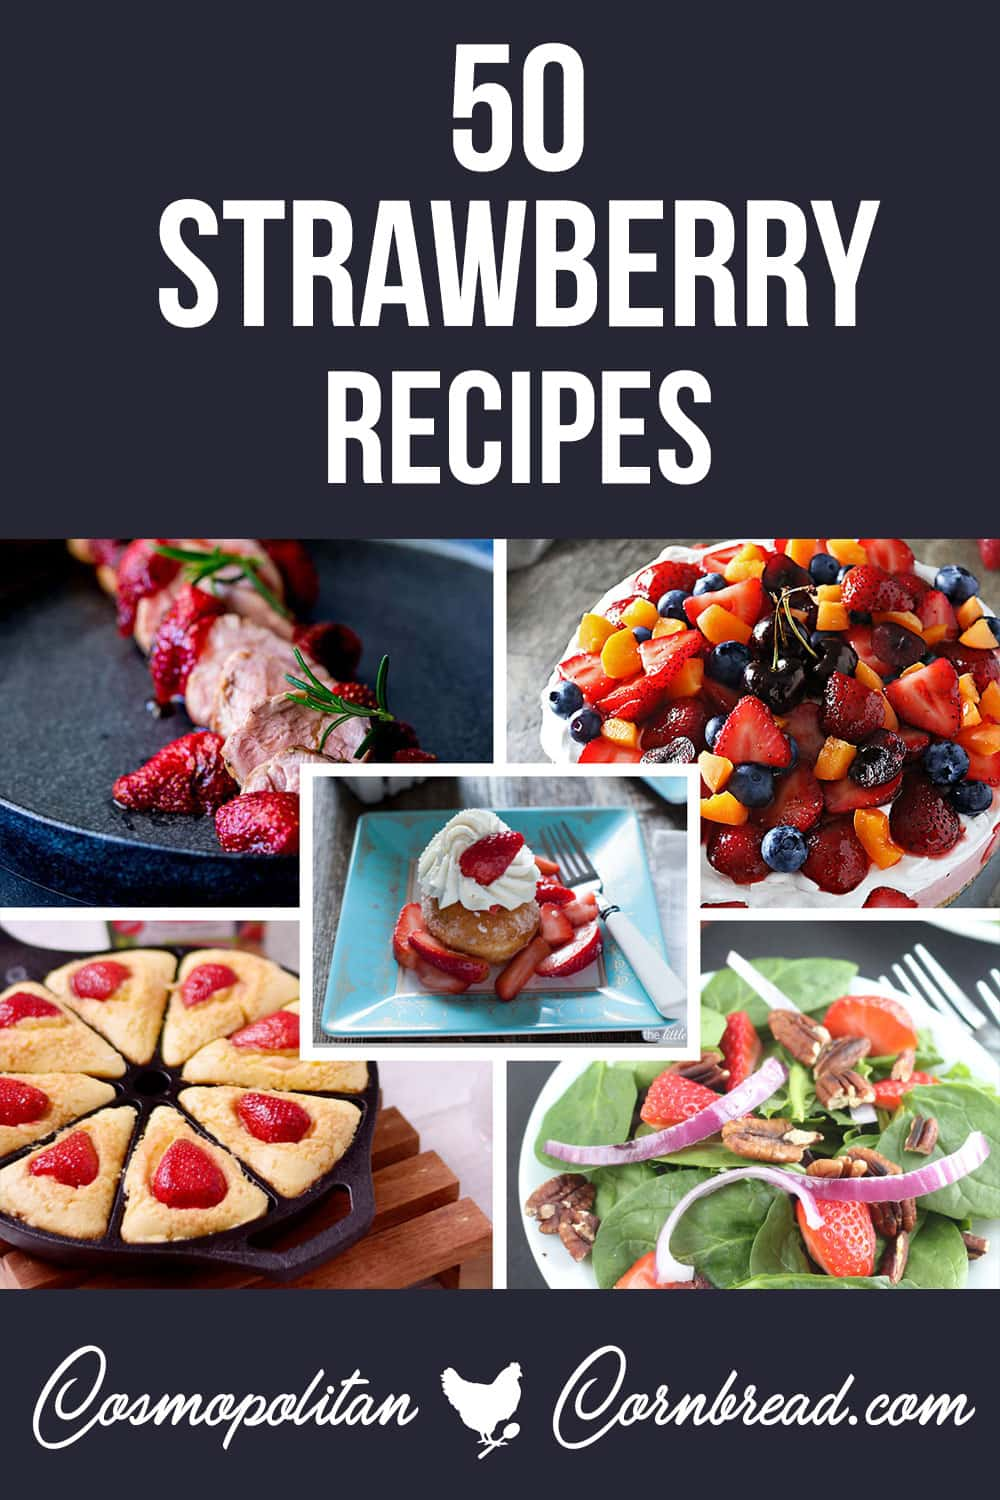 50 Strawberry Recipes - Find your favorite strawberry recipes in this collection, for baking, dipping or blending. Enjoy everything that strawberry season has to offer.